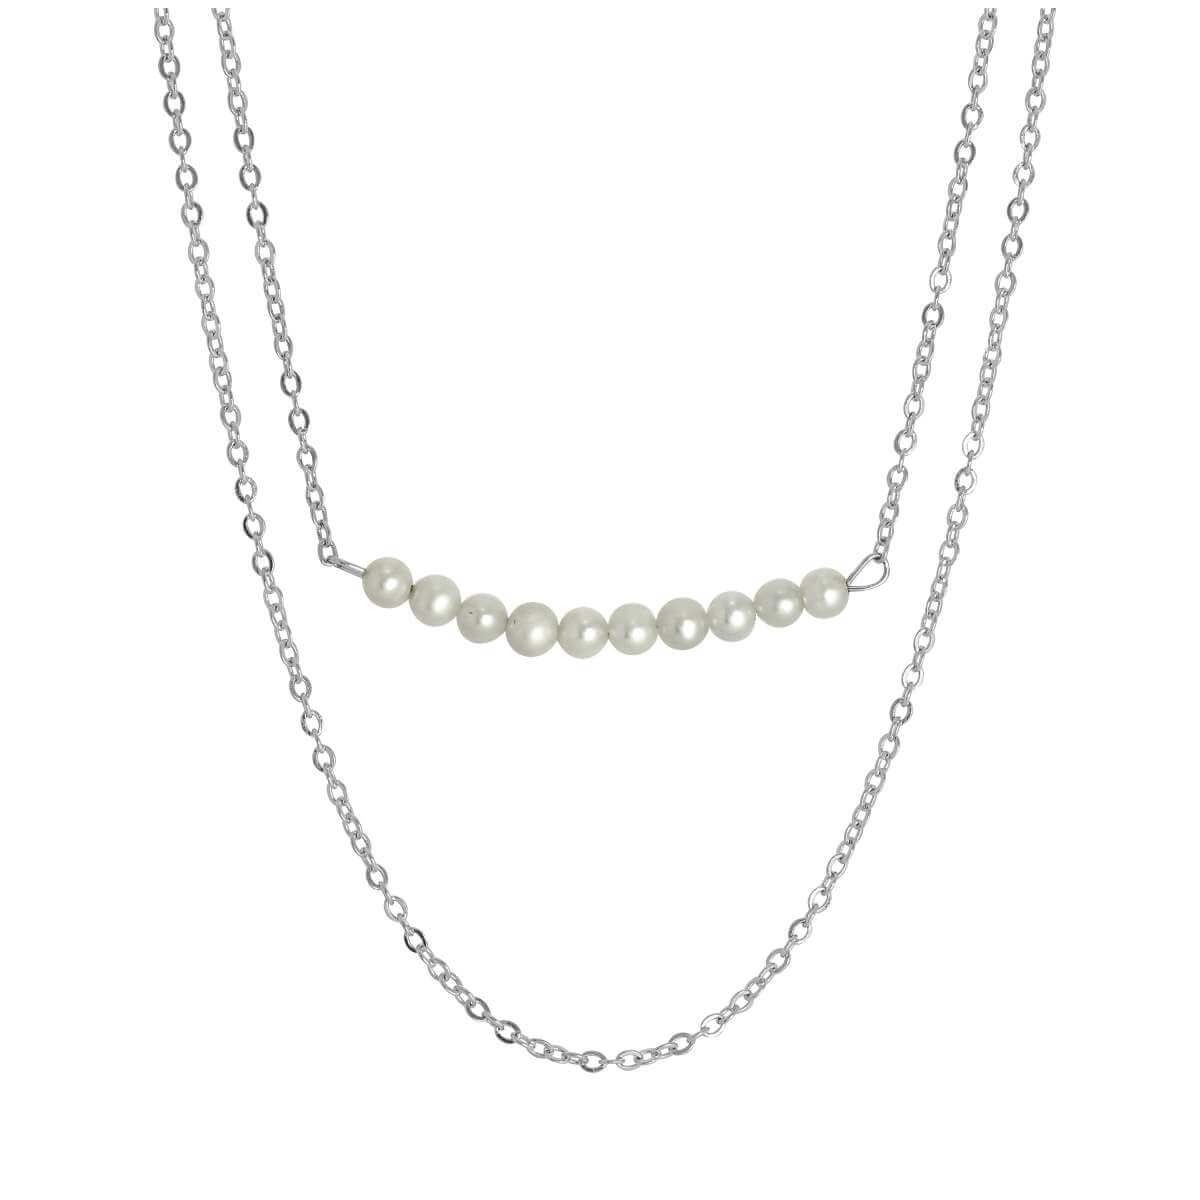 Sterling Silver Double Chain String of Pearls Necklace 15 & 18 Inches